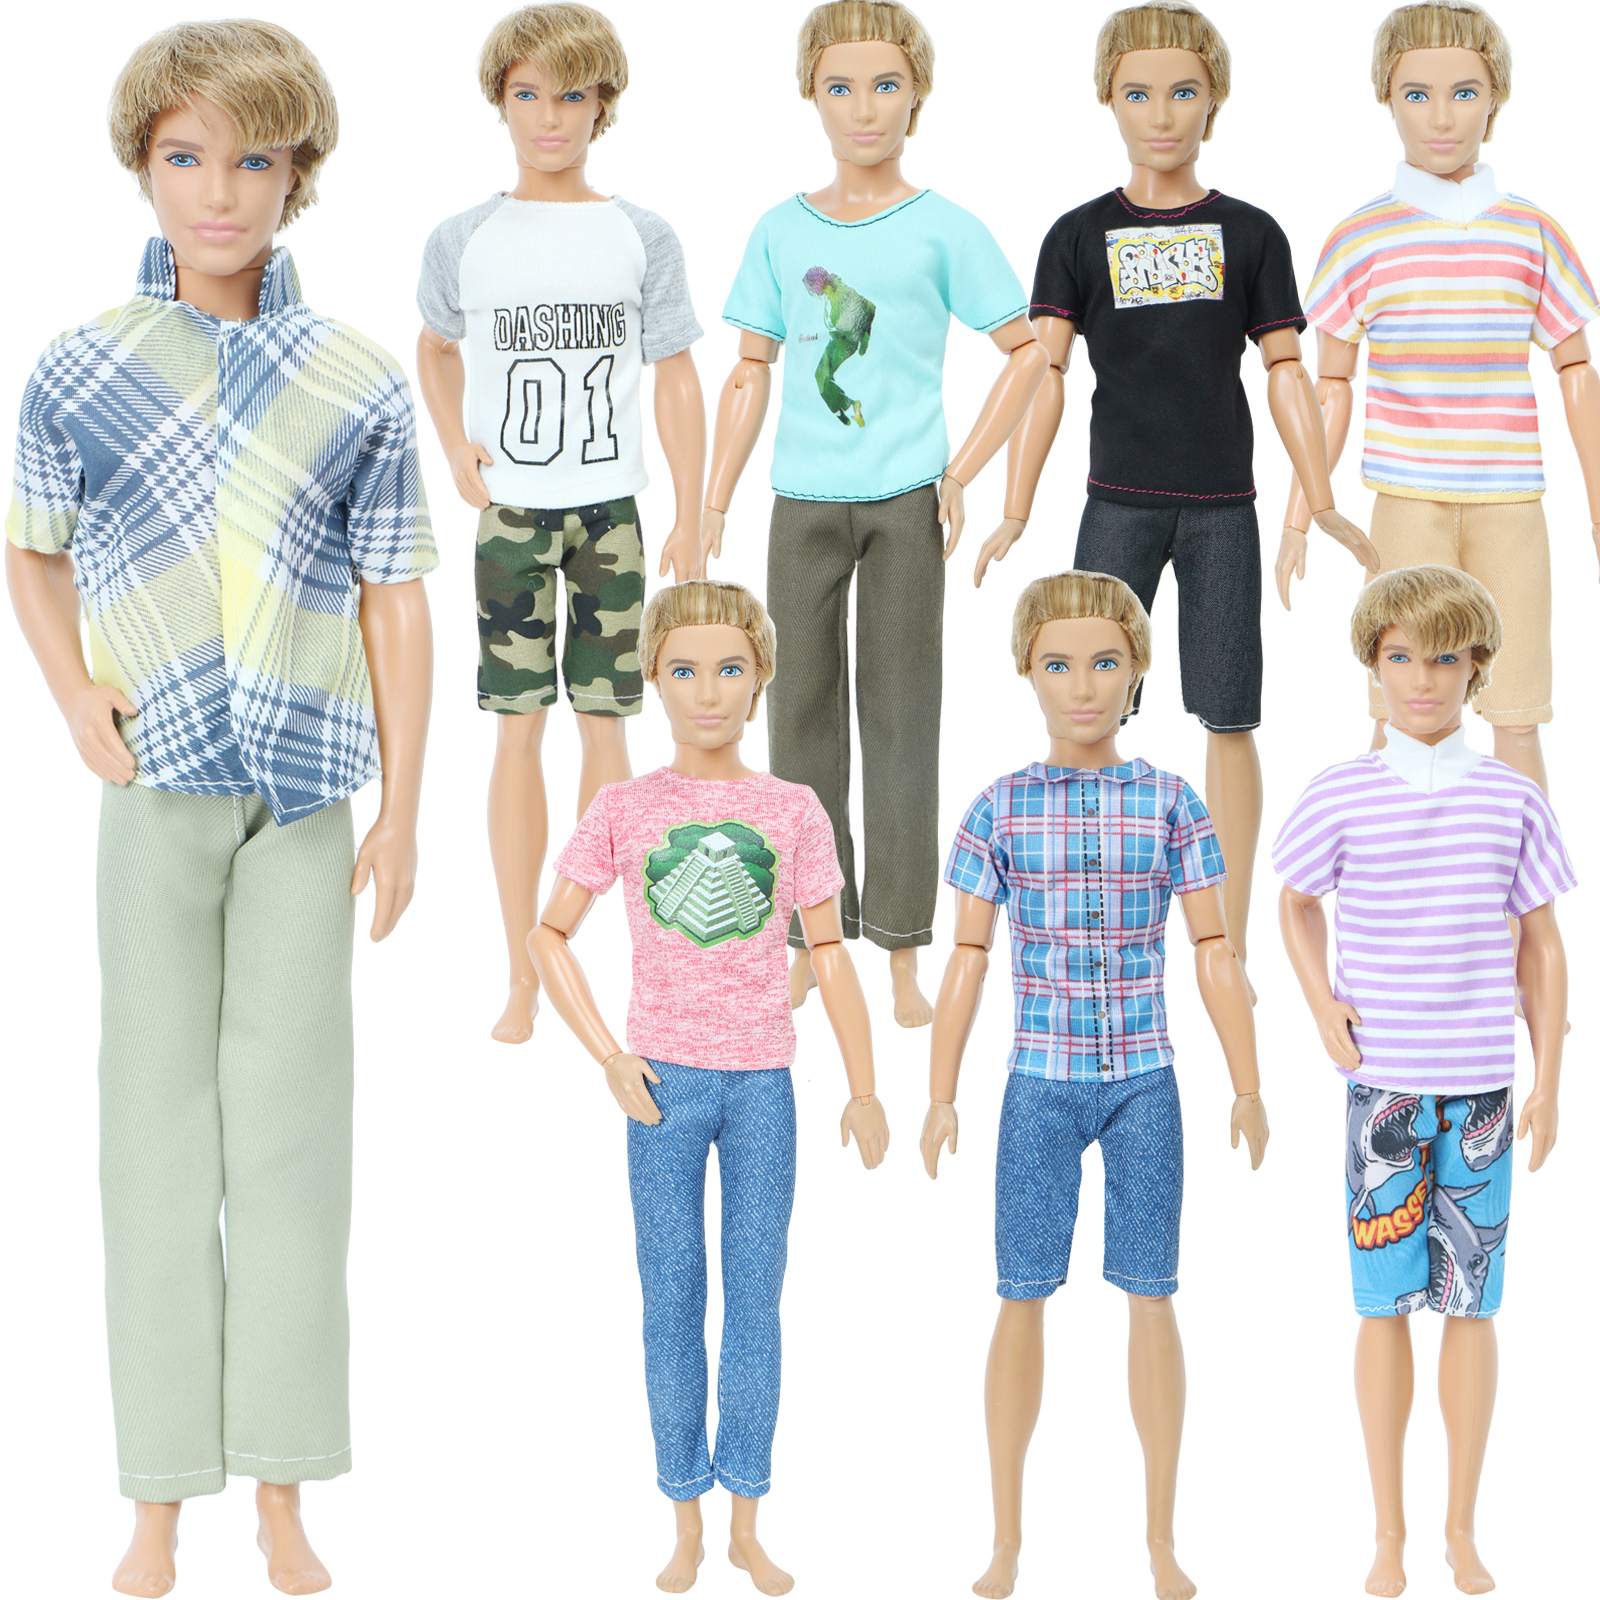 Handmade Men Outfit Mix Style T-Shirt Fashion Suit Cool Trousers Dollhouse Accessories Clothes For Barbie Ken Doll DIY Baby Toy